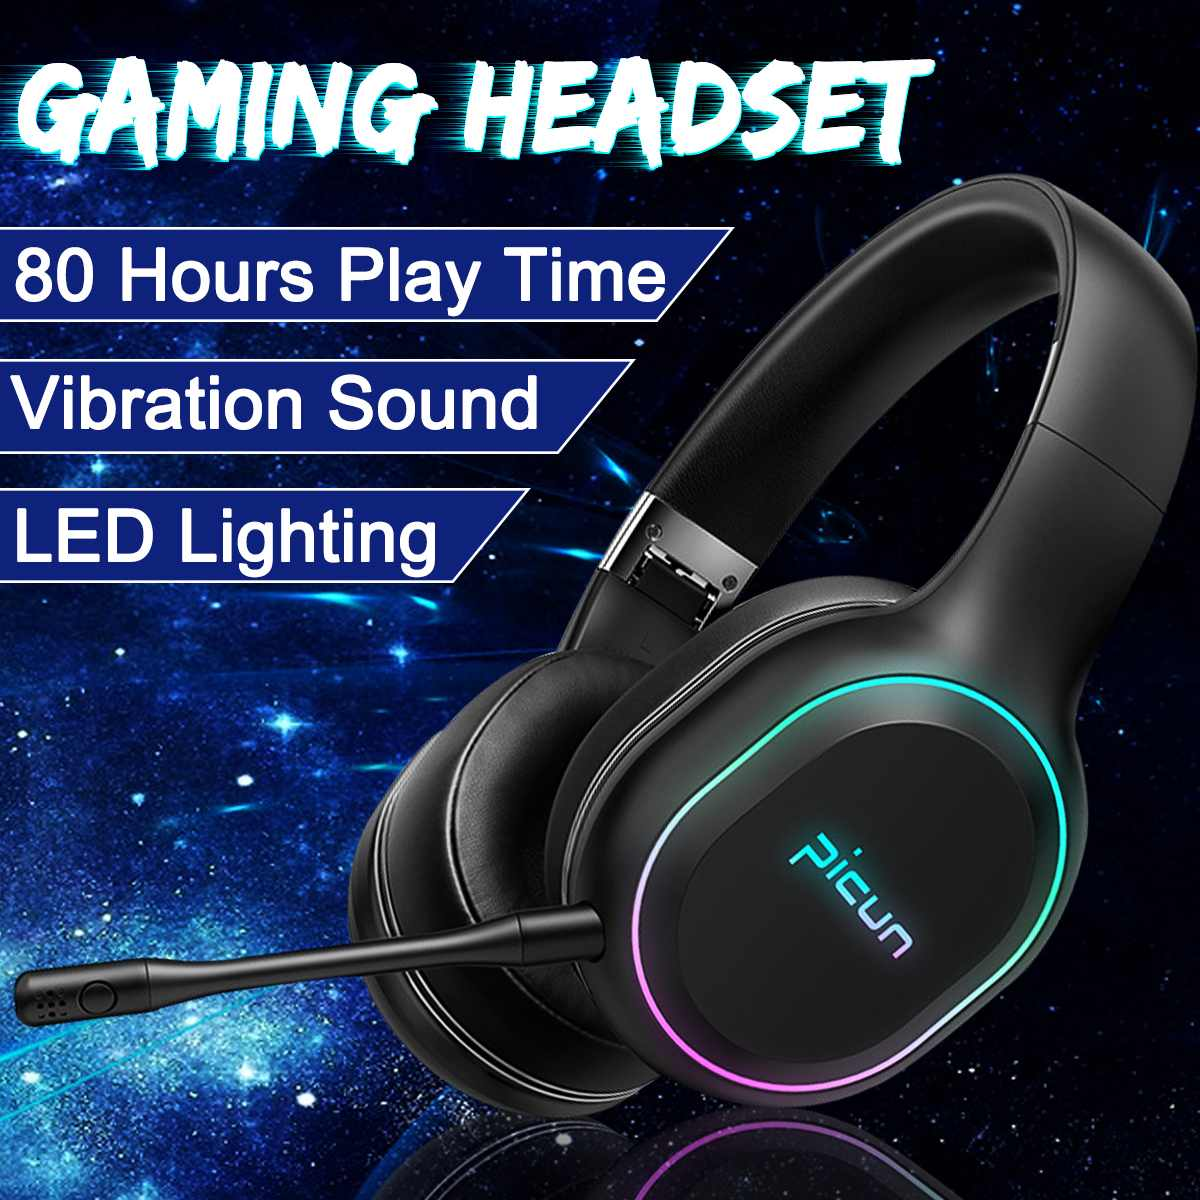 Bluetooth Over Ear Headphones Rgb Led Vibration Stereo Deep Bass Surround Sound Wireless Gaming Headset Earphone For Gamer Pc Bluetooth Earphones Headphones Aliexpress